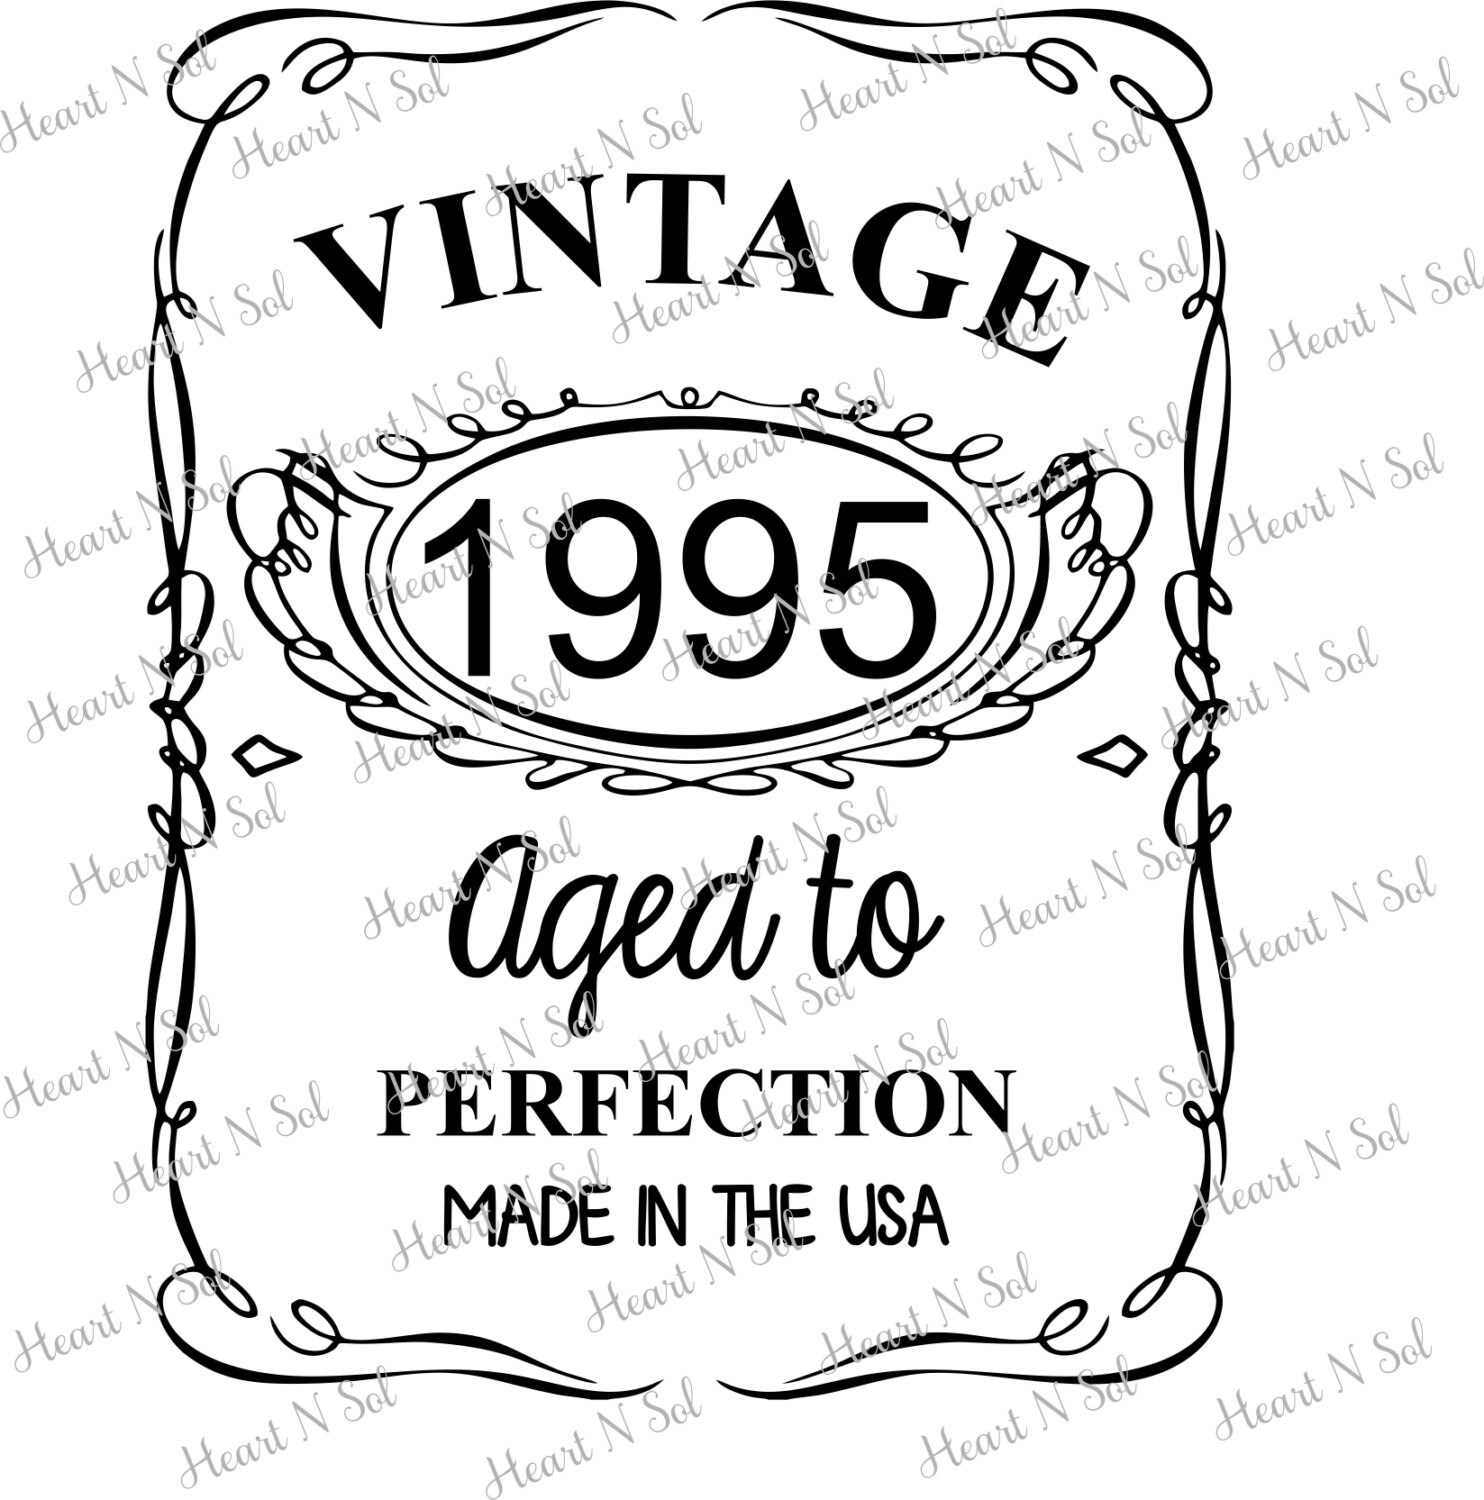 1995 Aged To Perfection Vintage Shirt Made In Usa